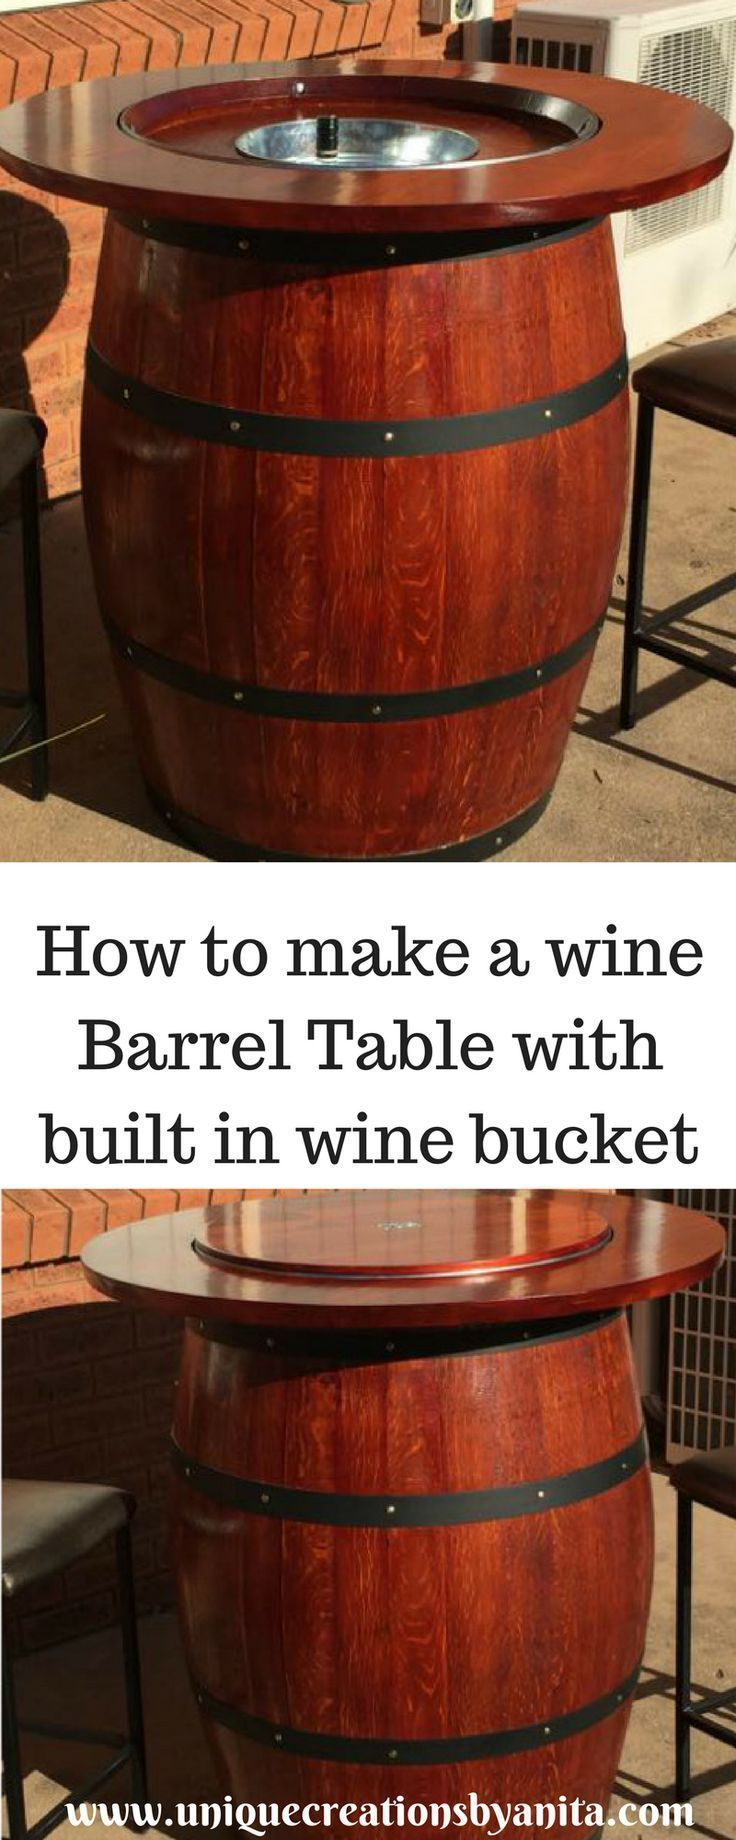 How To Make A Wine Barrel Table With A Built In Wine Bucket Wine Barrel Table Barrel Table Wine Bucket